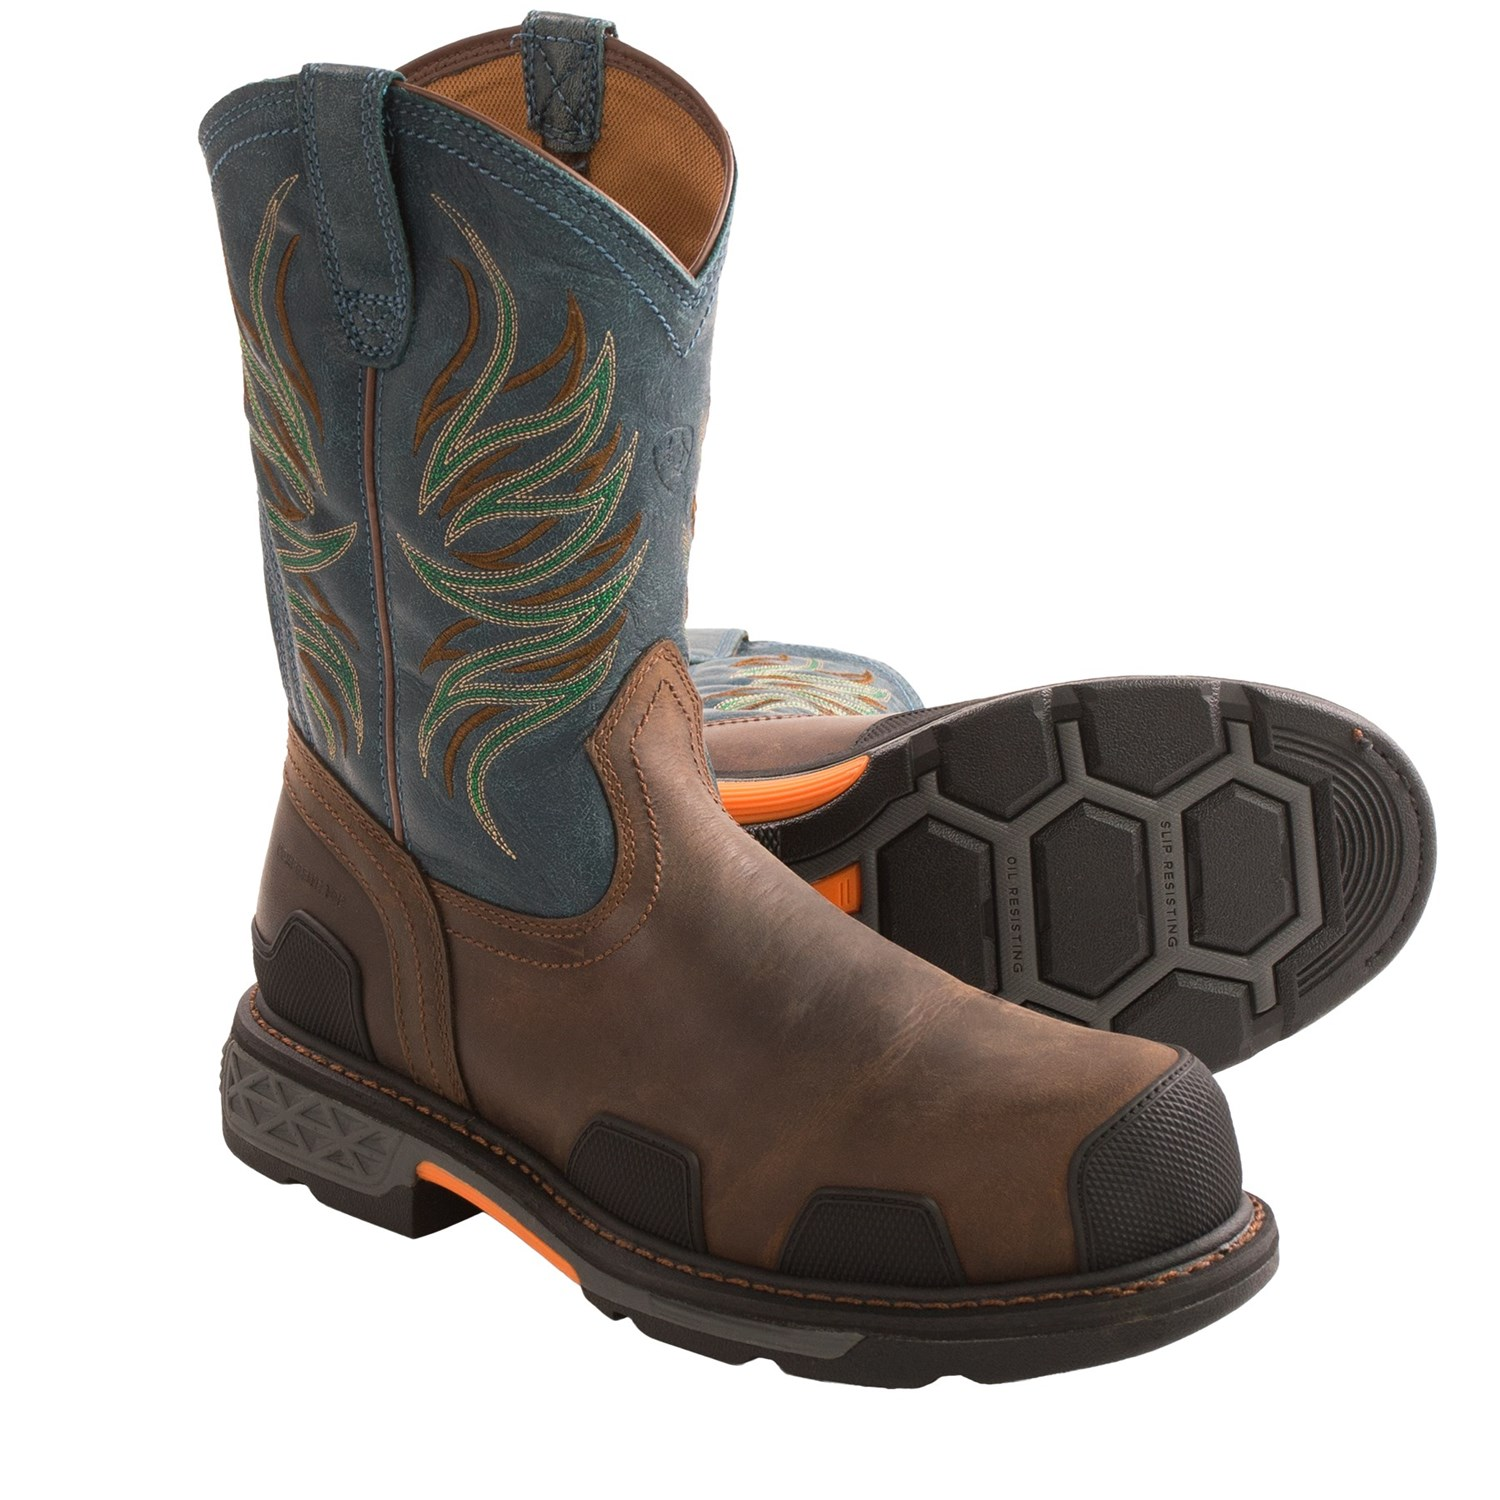 Ariat Boots For Cheap fuJoMn8j